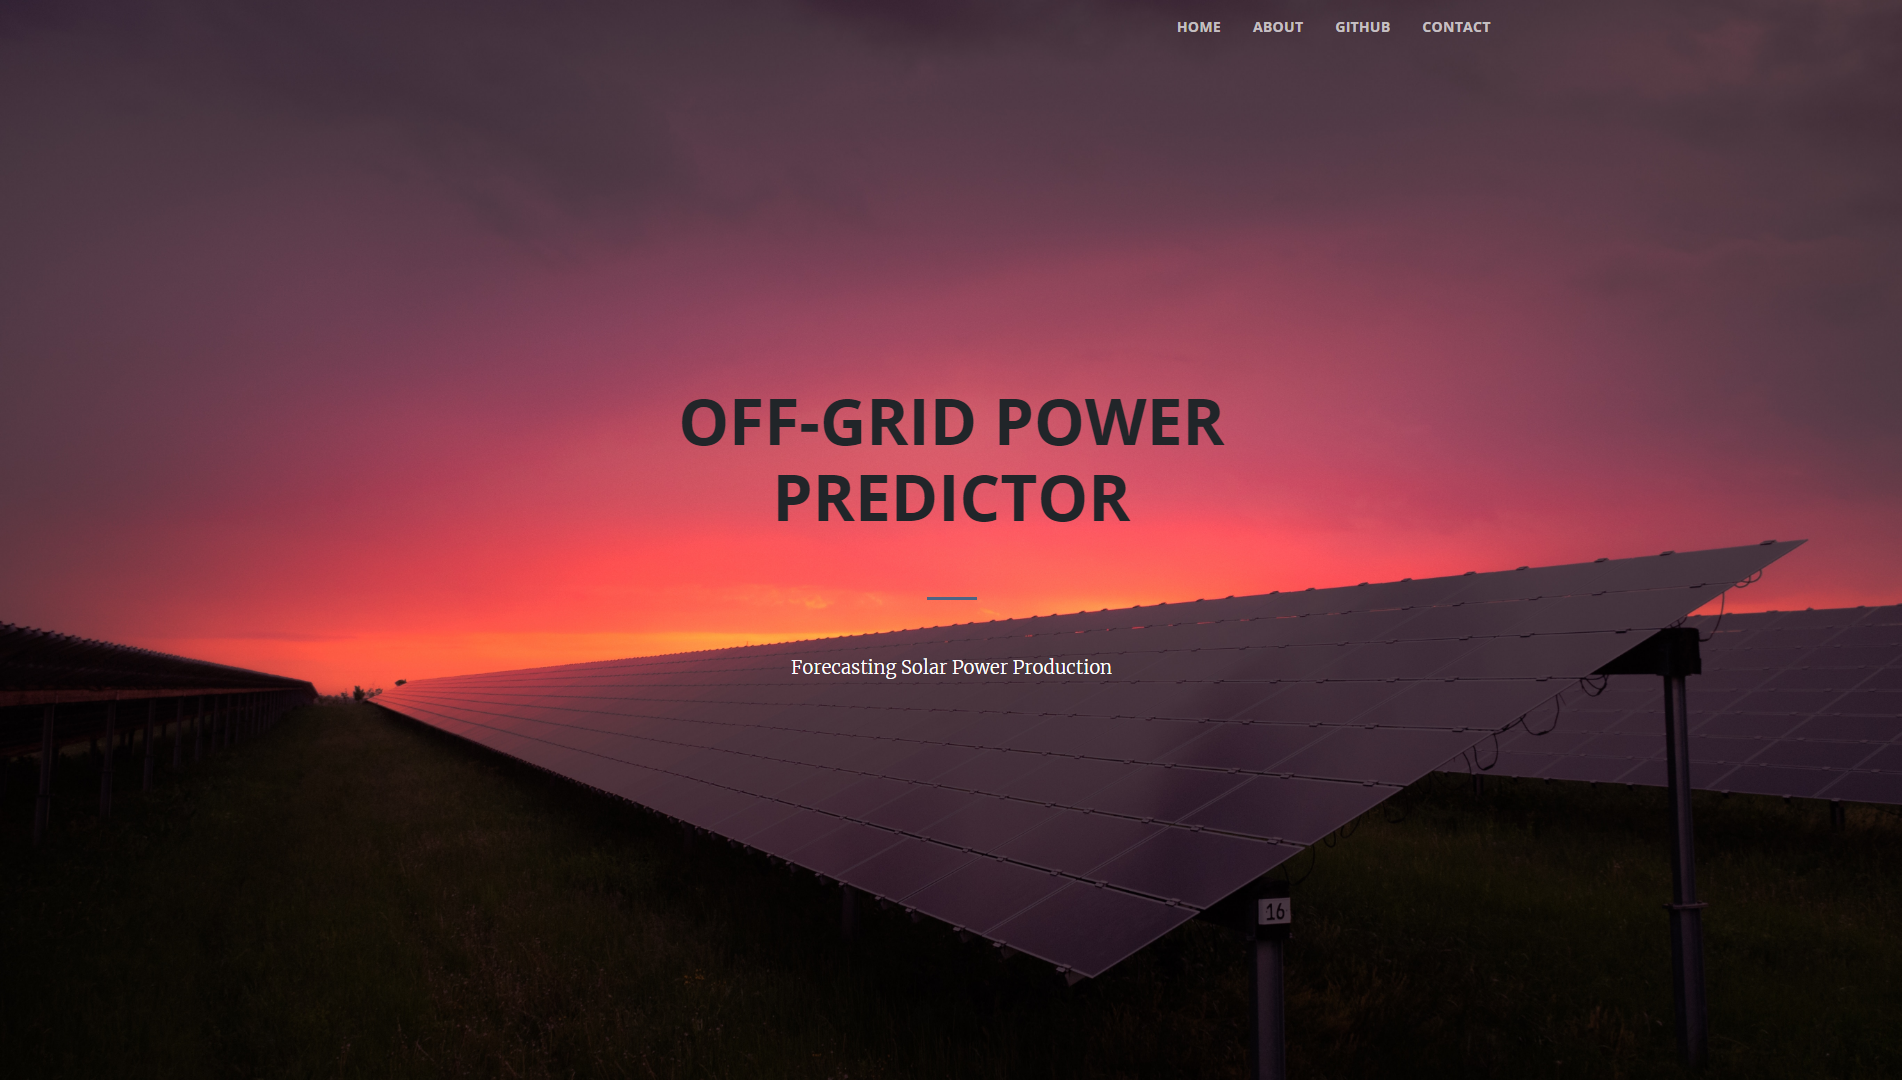 Power Predictor